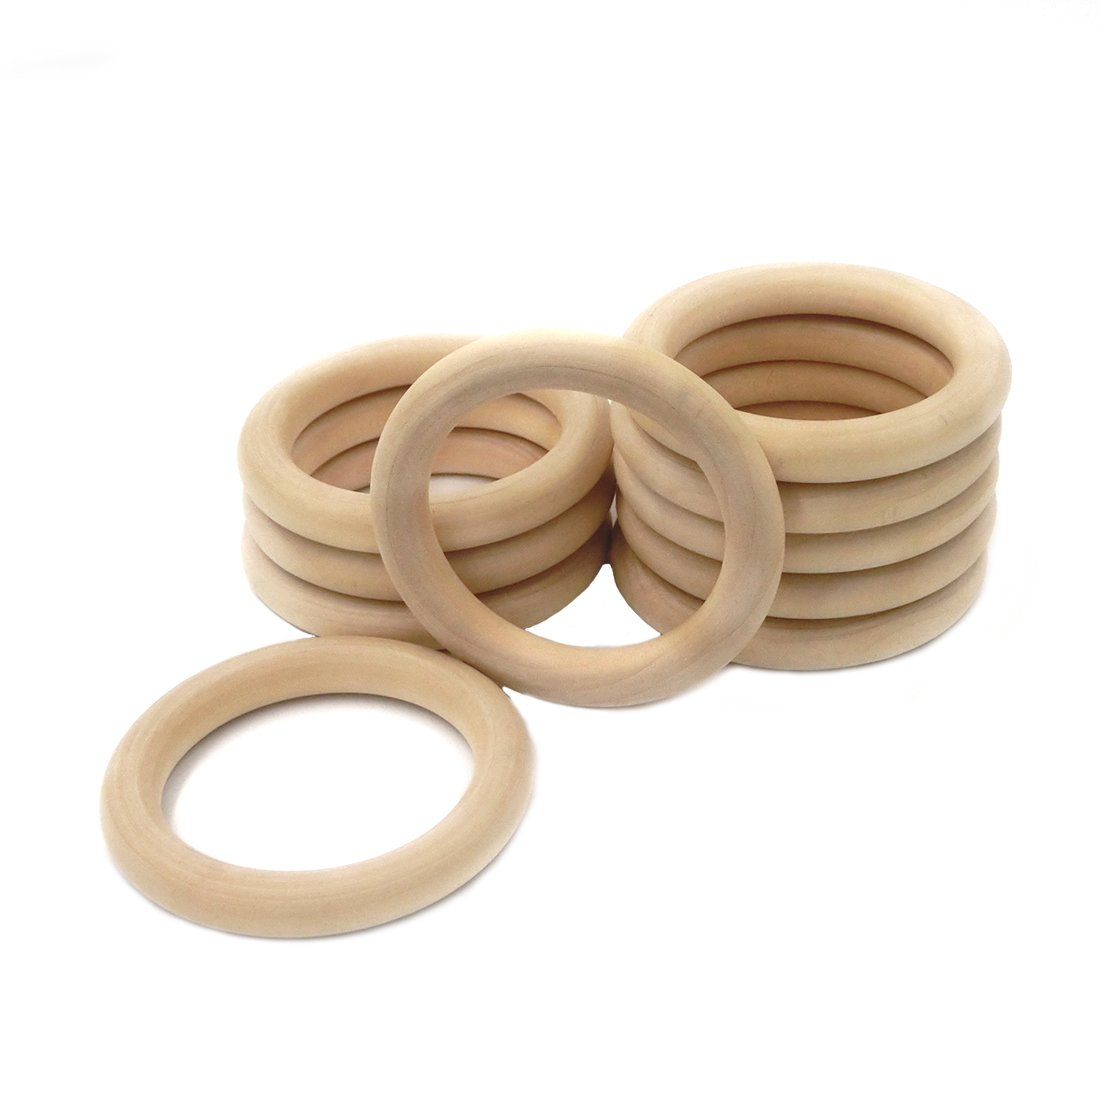 Amyster 20pcs Baby Wooden Teething Wood Ring 2.68 Inch Outer Diameter (68mm) Teething Rings Ring Throwing Games and More (20pcs)